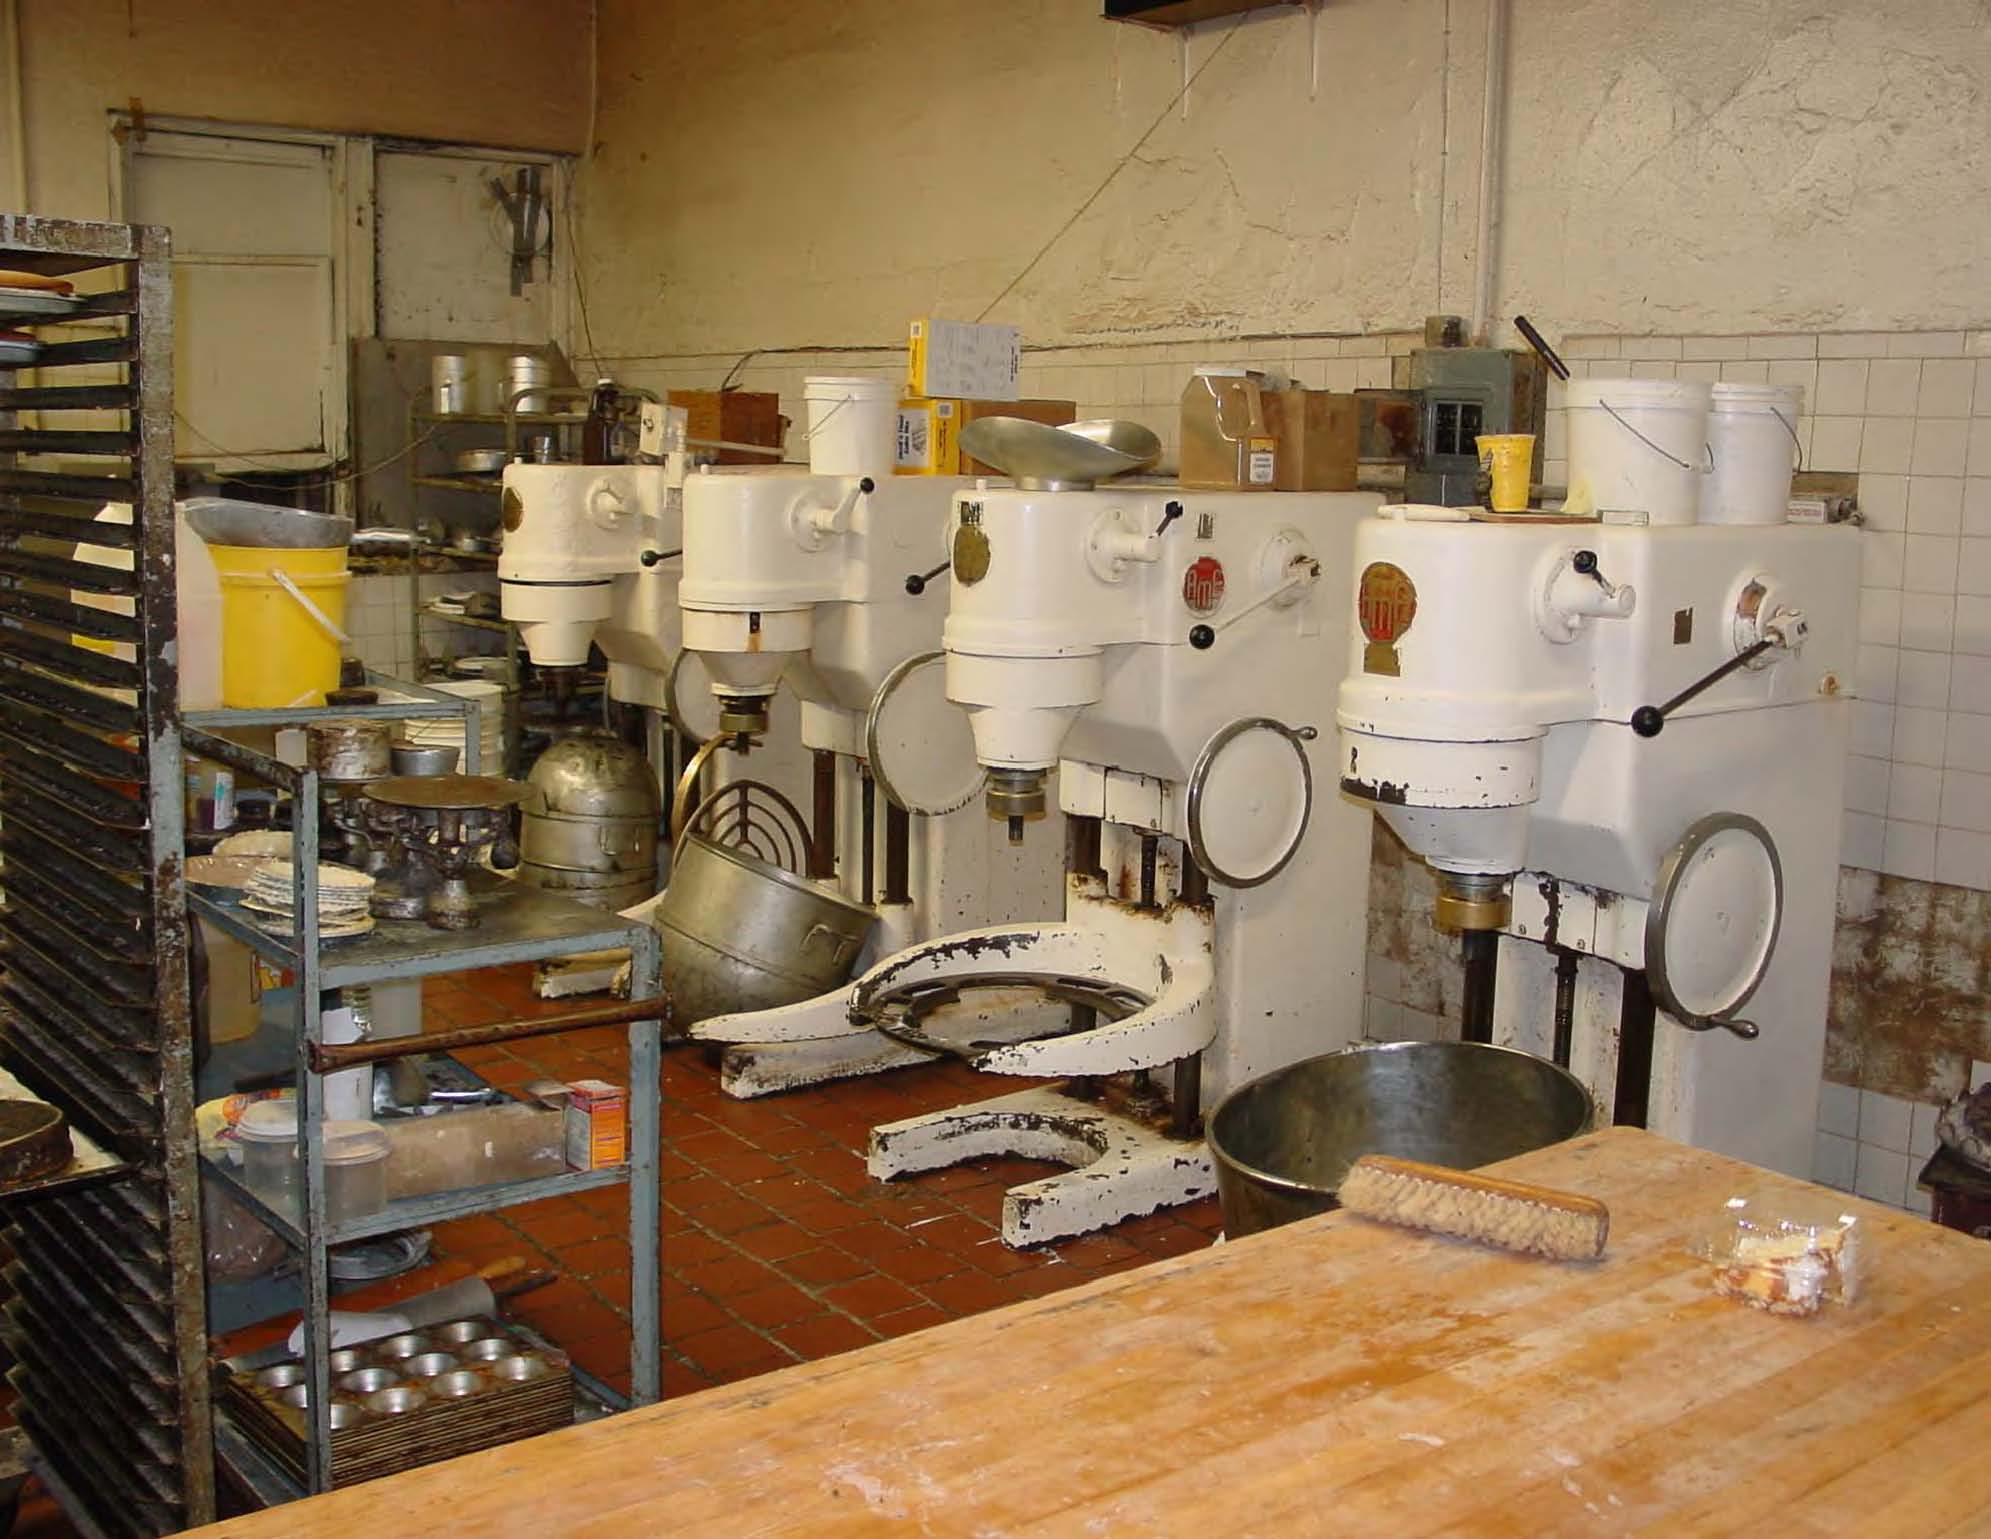 list of equipment needed for wholesale bakery business